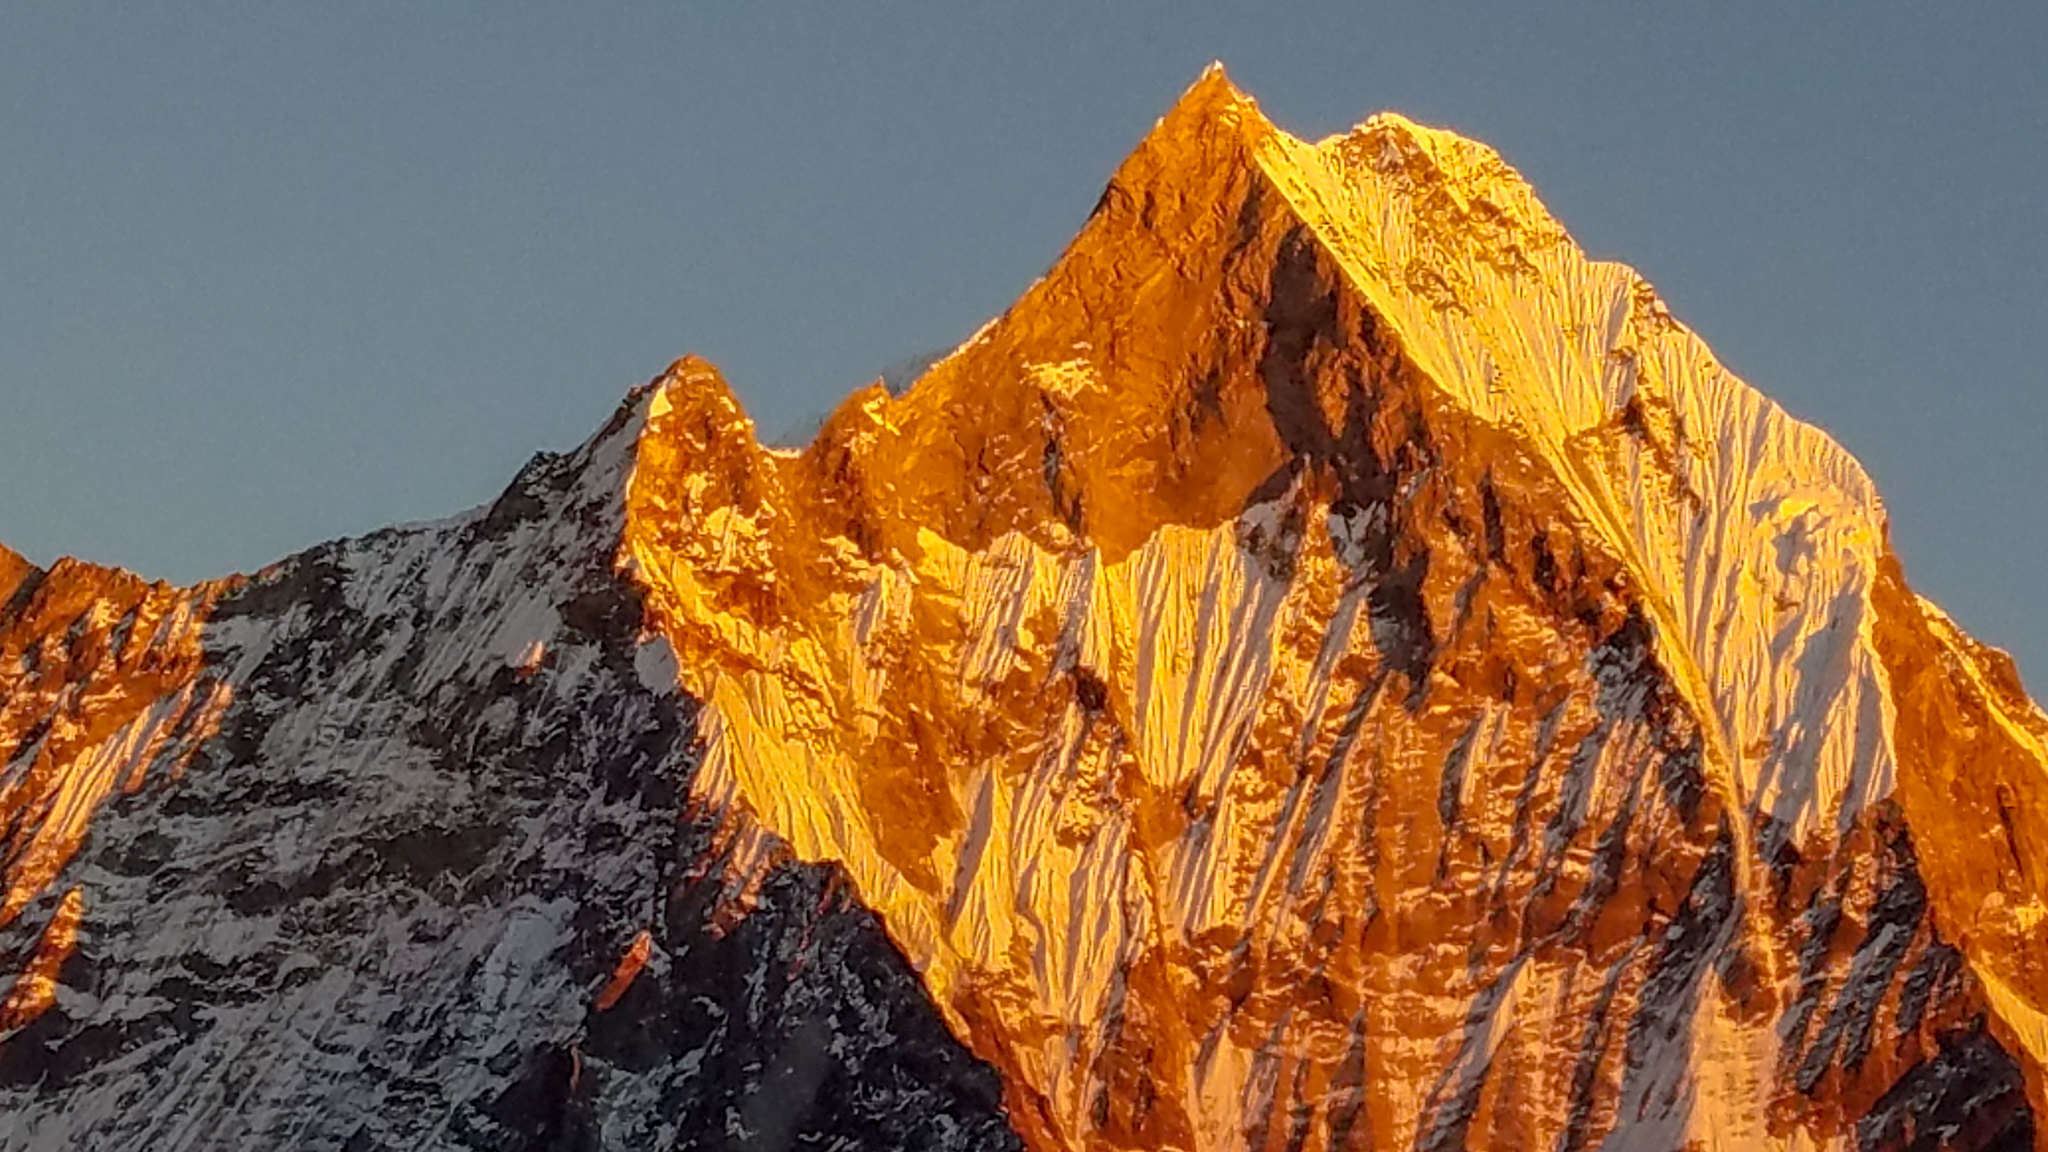 The Himalayas is a very fragile place and require ethical traveler to visit